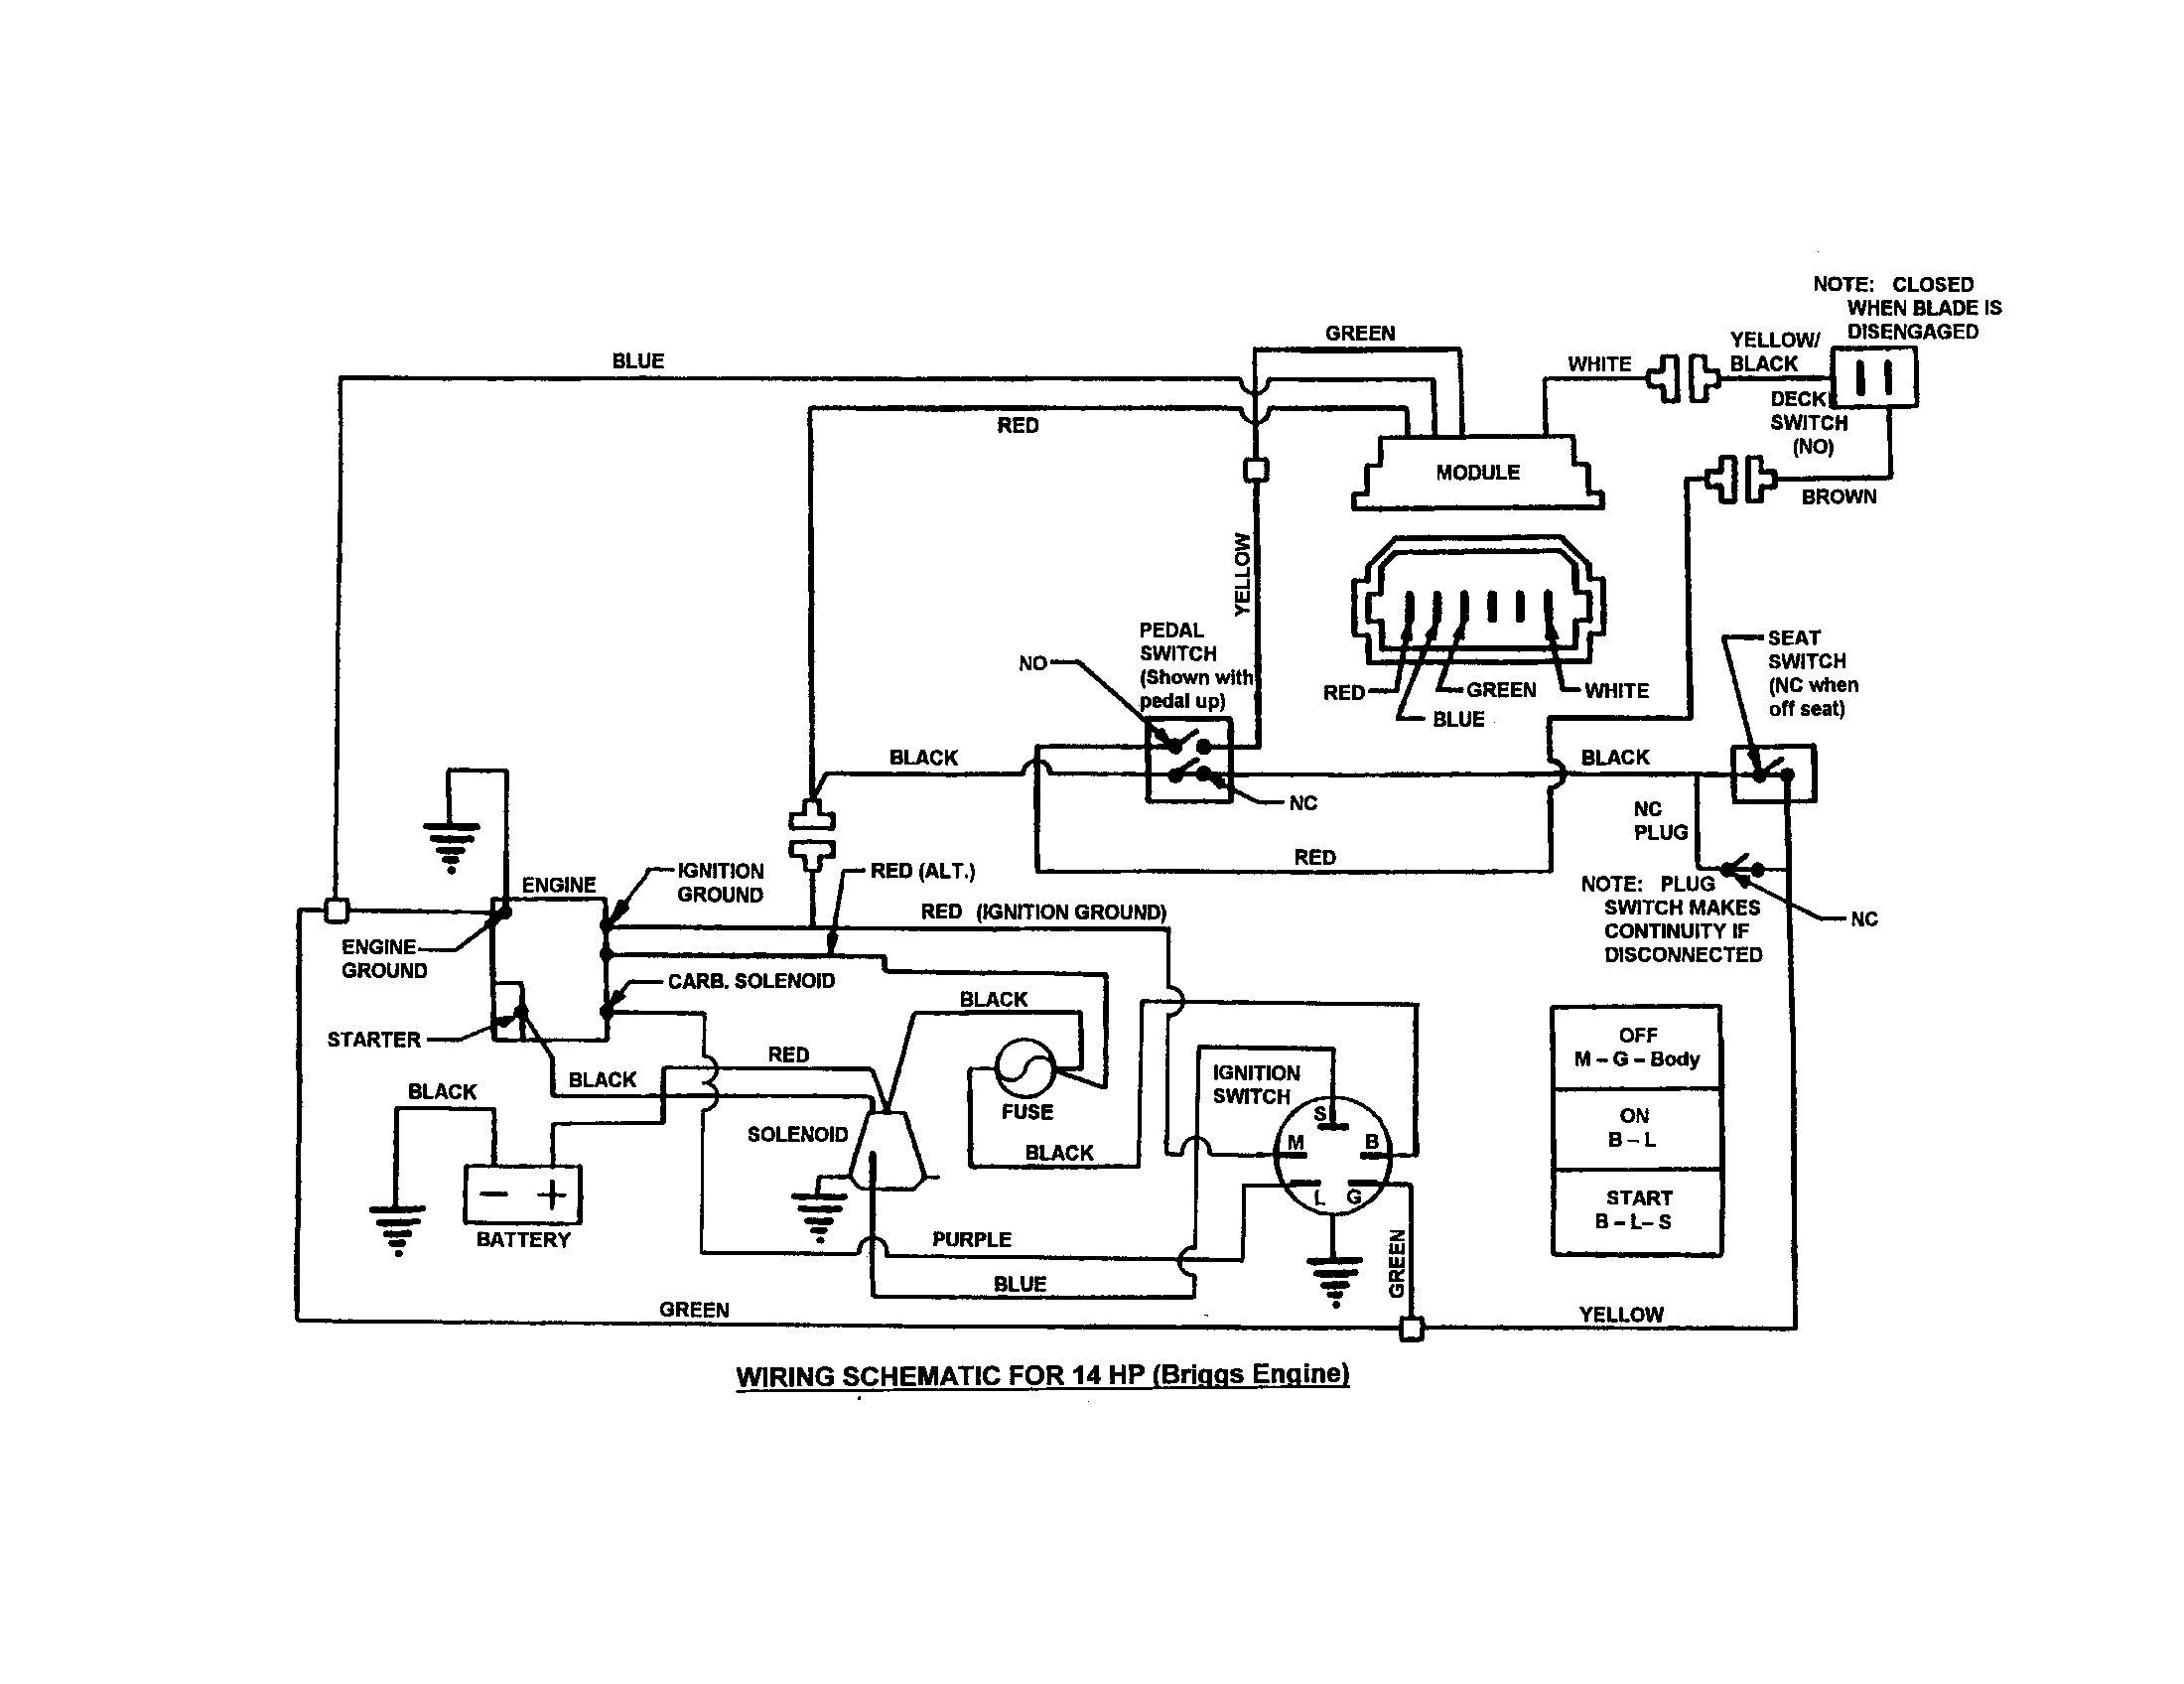 snapper ignition switch wiring diagram wiring diagrams long snapper ignition wiring diagram [ 2200 x 1696 Pixel ]